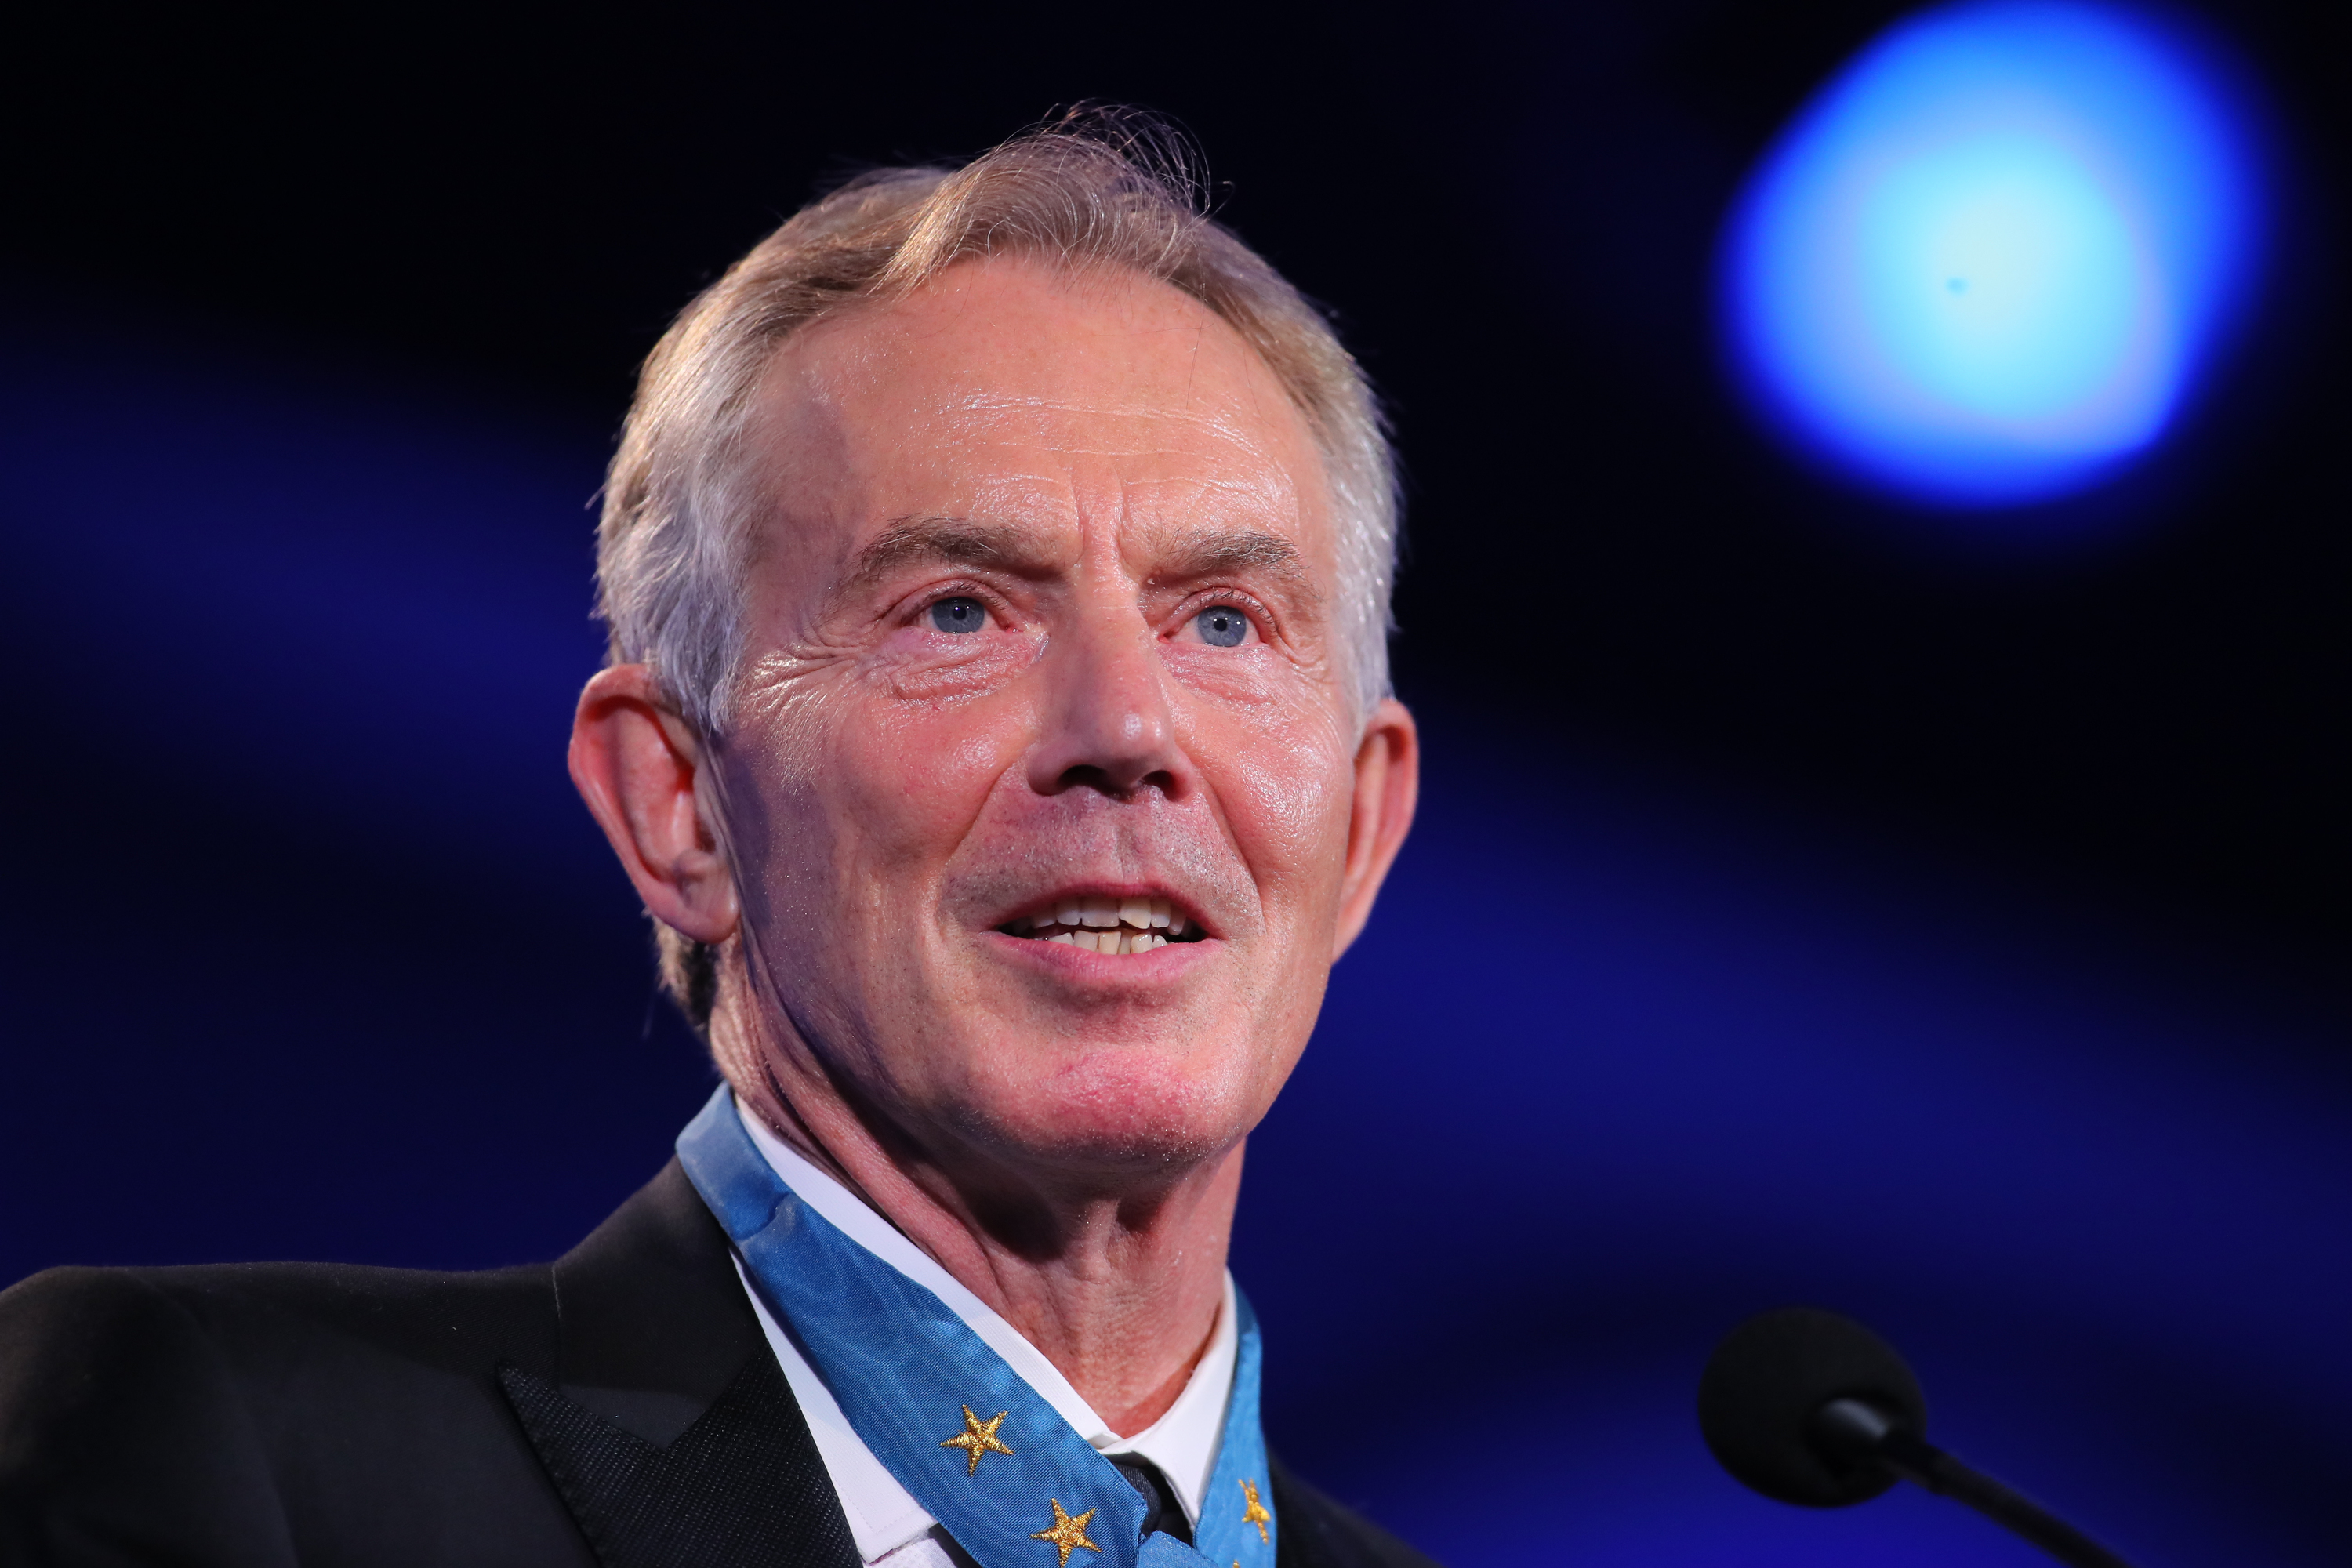 Former British Prime Minister Tony Blair at the 2016 Starkey Hearing Foundation  So the World May Hear  awards gala at the St Paul RiverCentre on July 17, 2016 in St Paul, Minnesota.